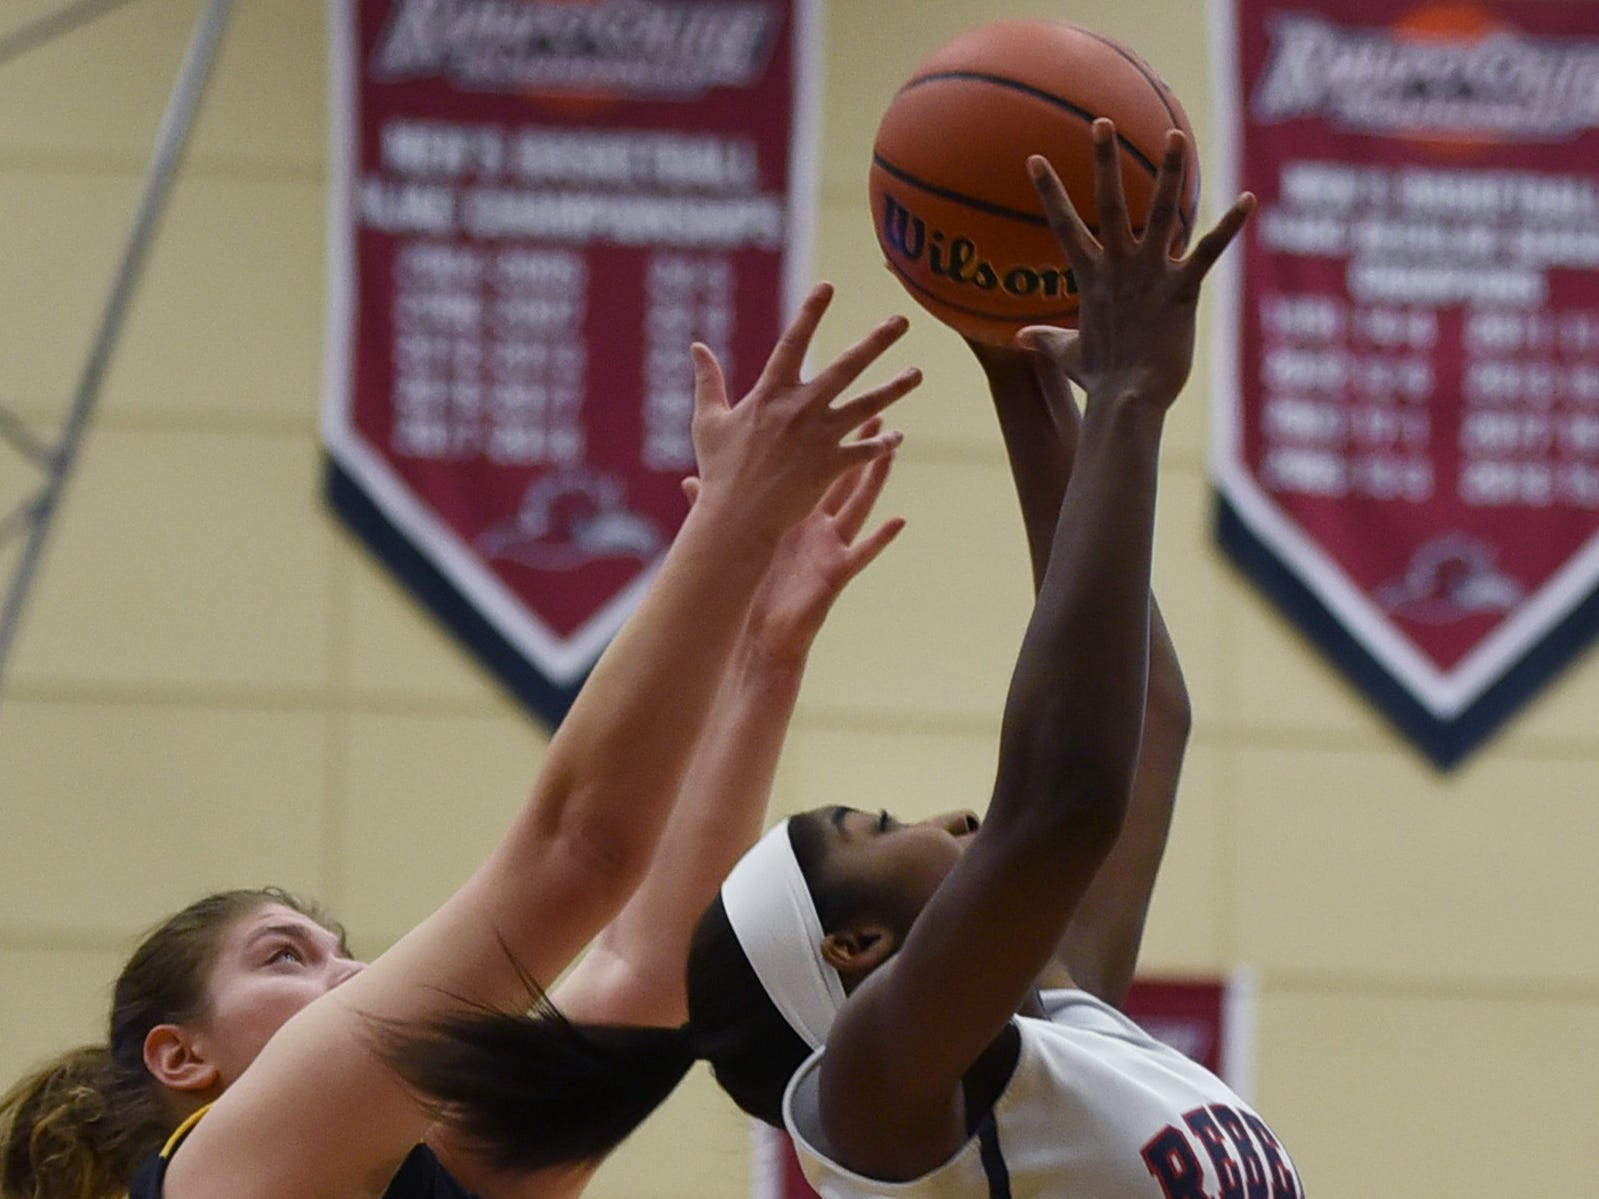 Jaayden Lafontant (no.15) of Saddle River Day makes a shot as Alexandra Hartman (no.24) of Paramus Catholic defends in the first half during the 2019 Bergen County girls basketball championship semifinal at Ramapo College in Mahwah on 02/10/19.